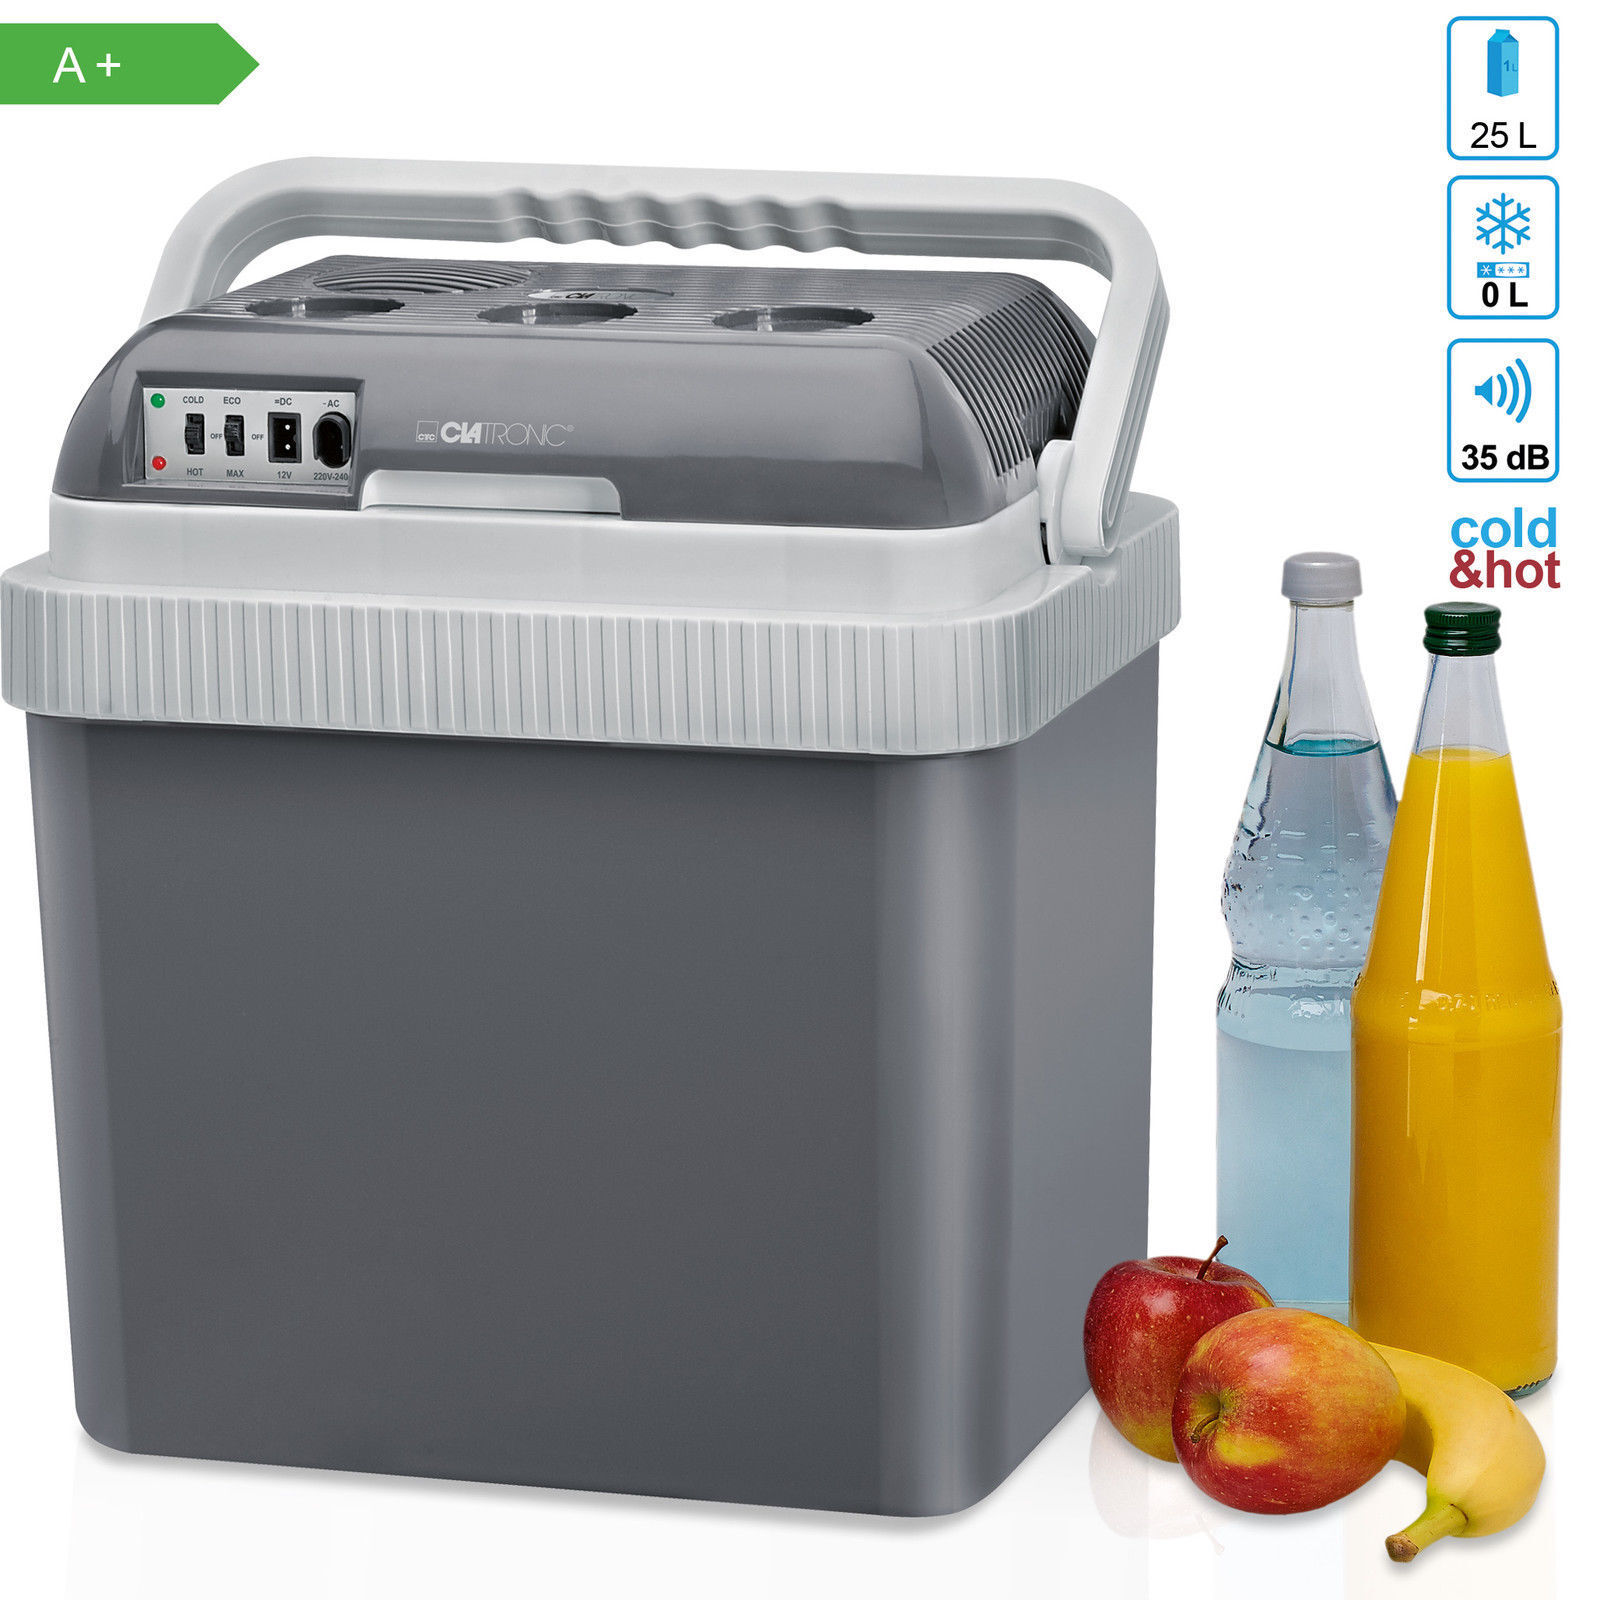 Fridge Electric Portable  car camping travel 845.4oz heat and cold 12V 220V NEW  gorgeous